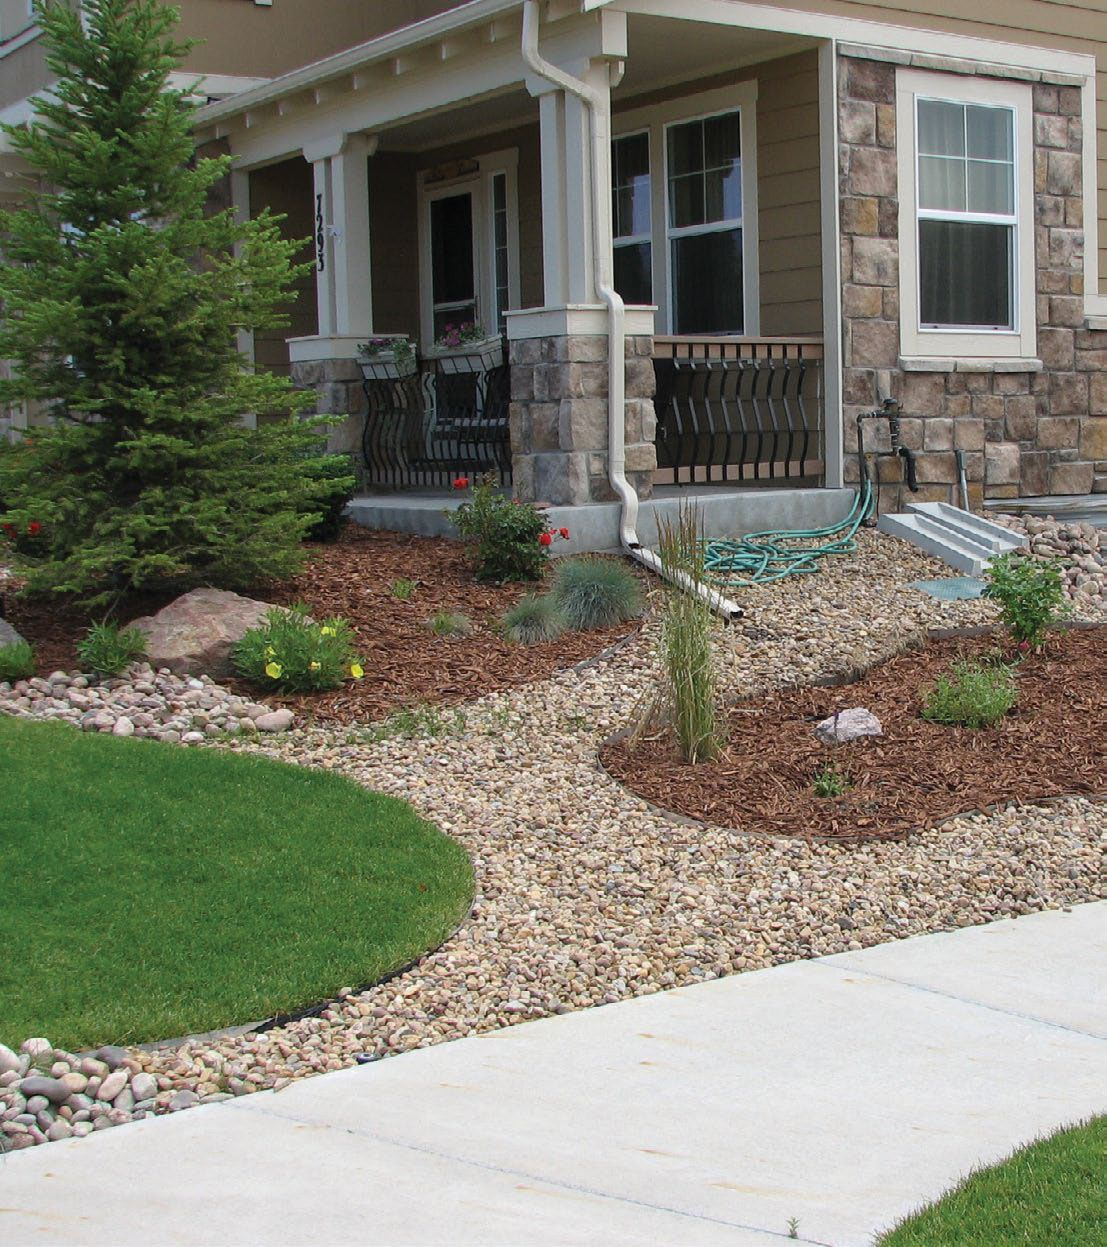 Xeriscaping Front Yards in Colorado | Xeriscape to save ... on Xeriscape Backyard Designs  id=54476